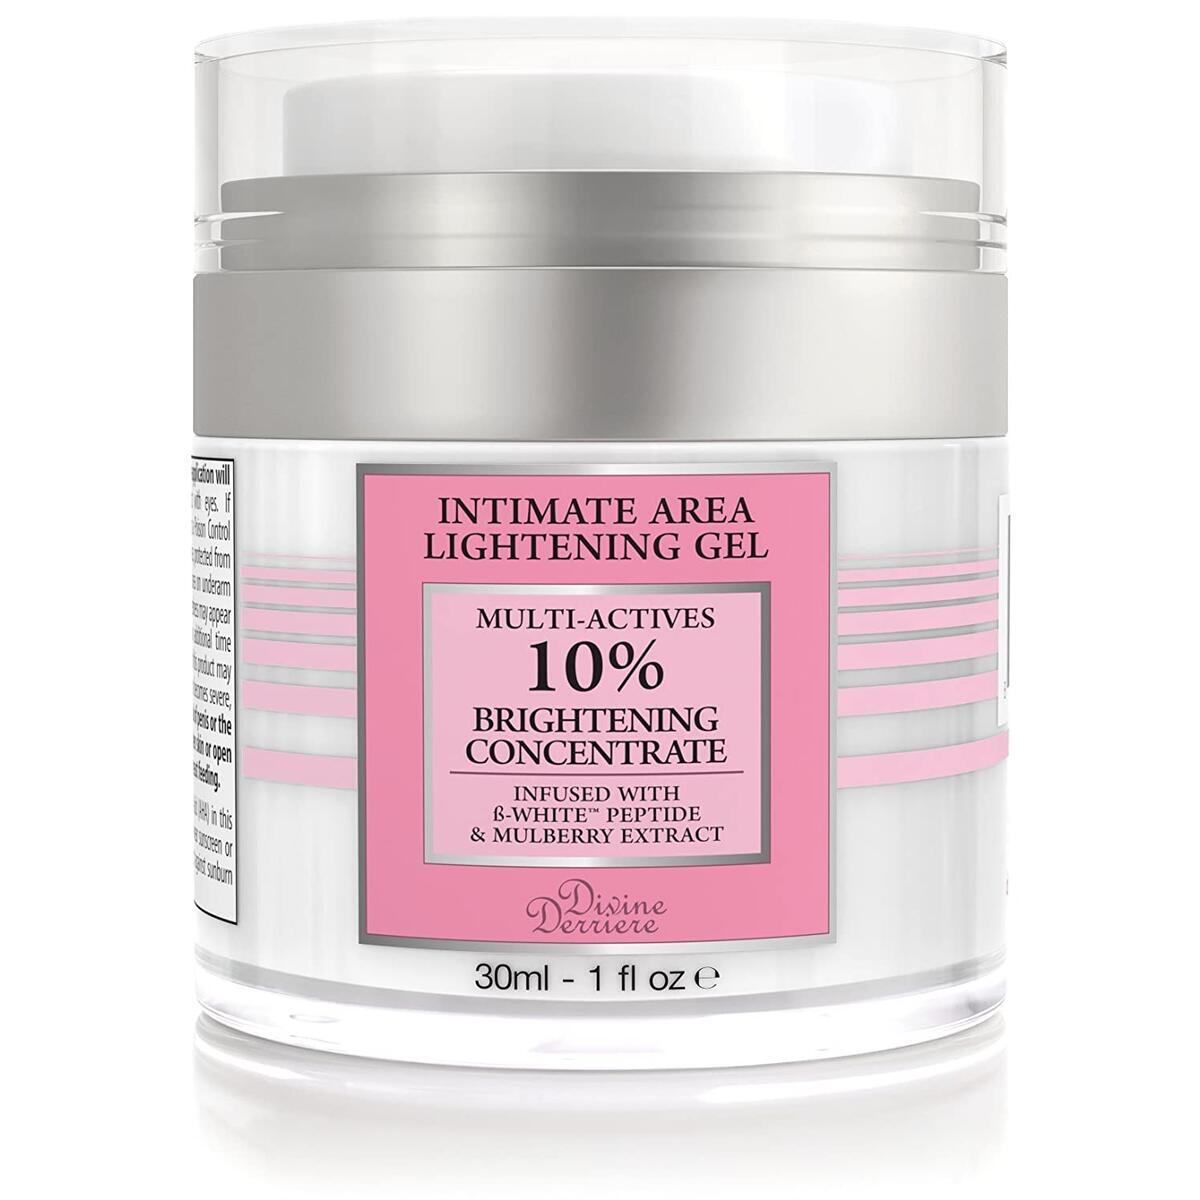 Intimate Skin Lightening Gel for Body, Face, Bikini and Sensitive Areas - Skin Whitening Cream Contains Mulberry Extract, Arbutin, B-White Peptide